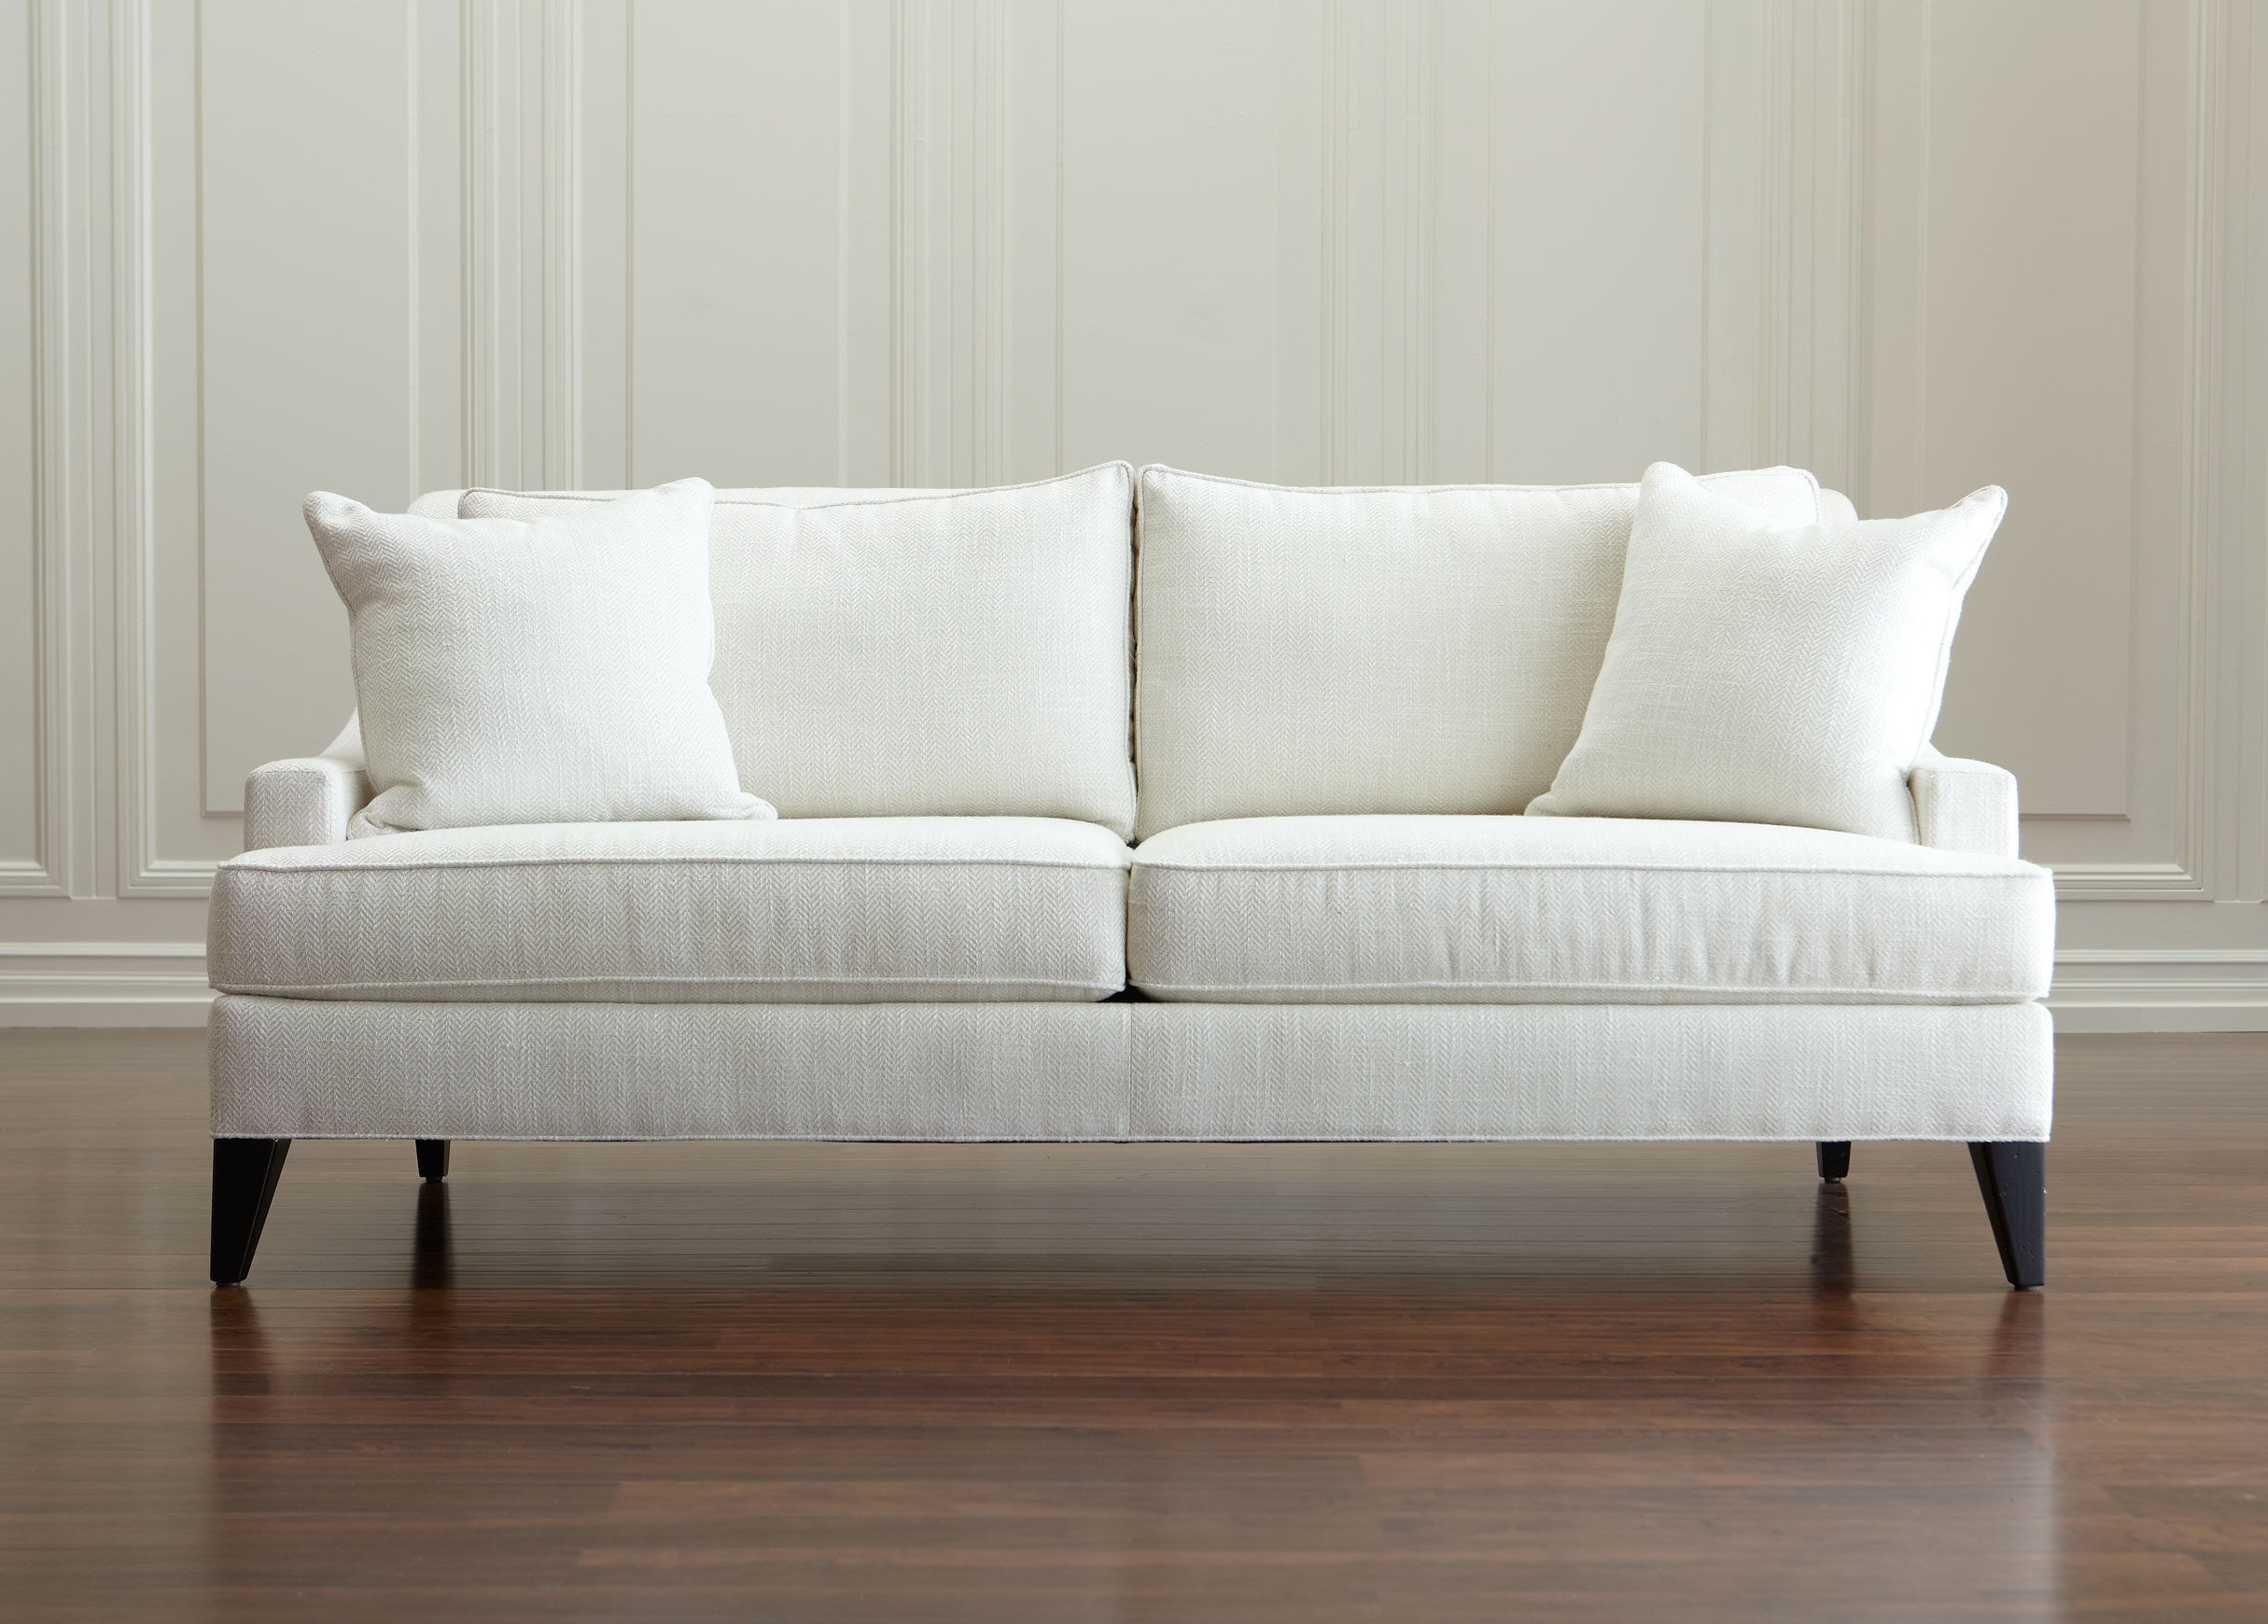 Down Filled Sofas For Recent Furniture : Ethan Allen Down Filled Sofa Luxury Best Ethan Allen (View 14 of 15)